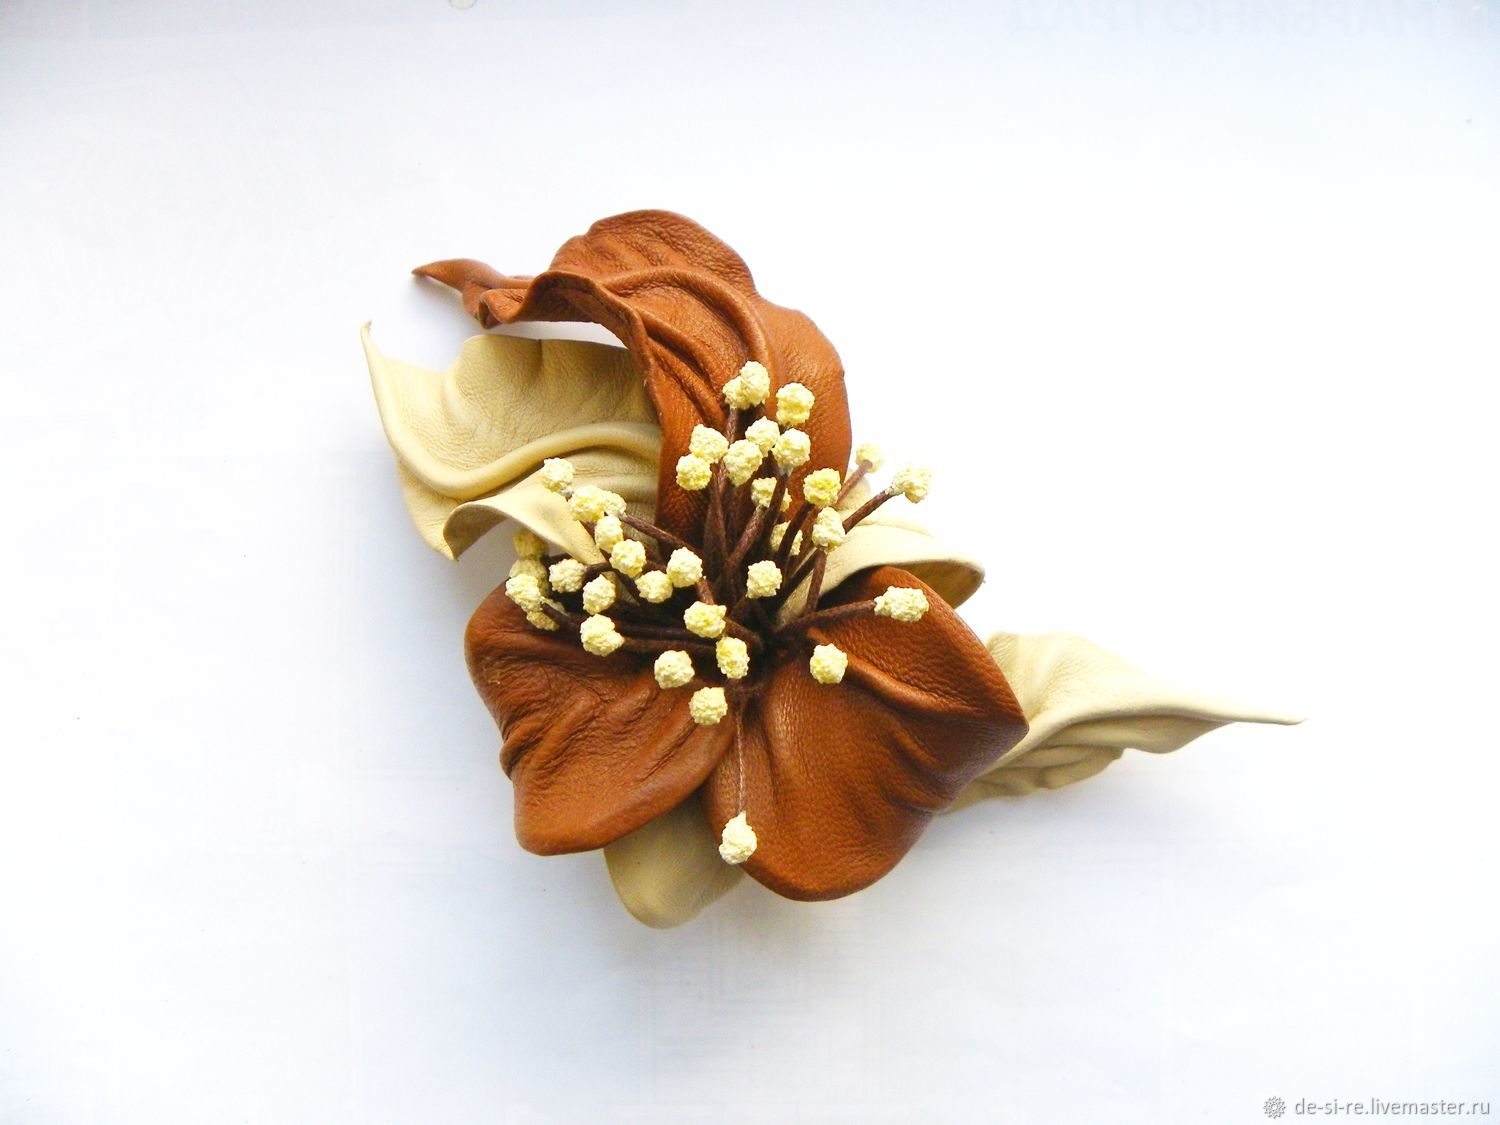 Brooch flower leather legends of the Fall beige light brown red. Brooch gift for women, gift for myself. Buy flower brooch from leather in Moscow. To buy a gift for Moscow brooch#%